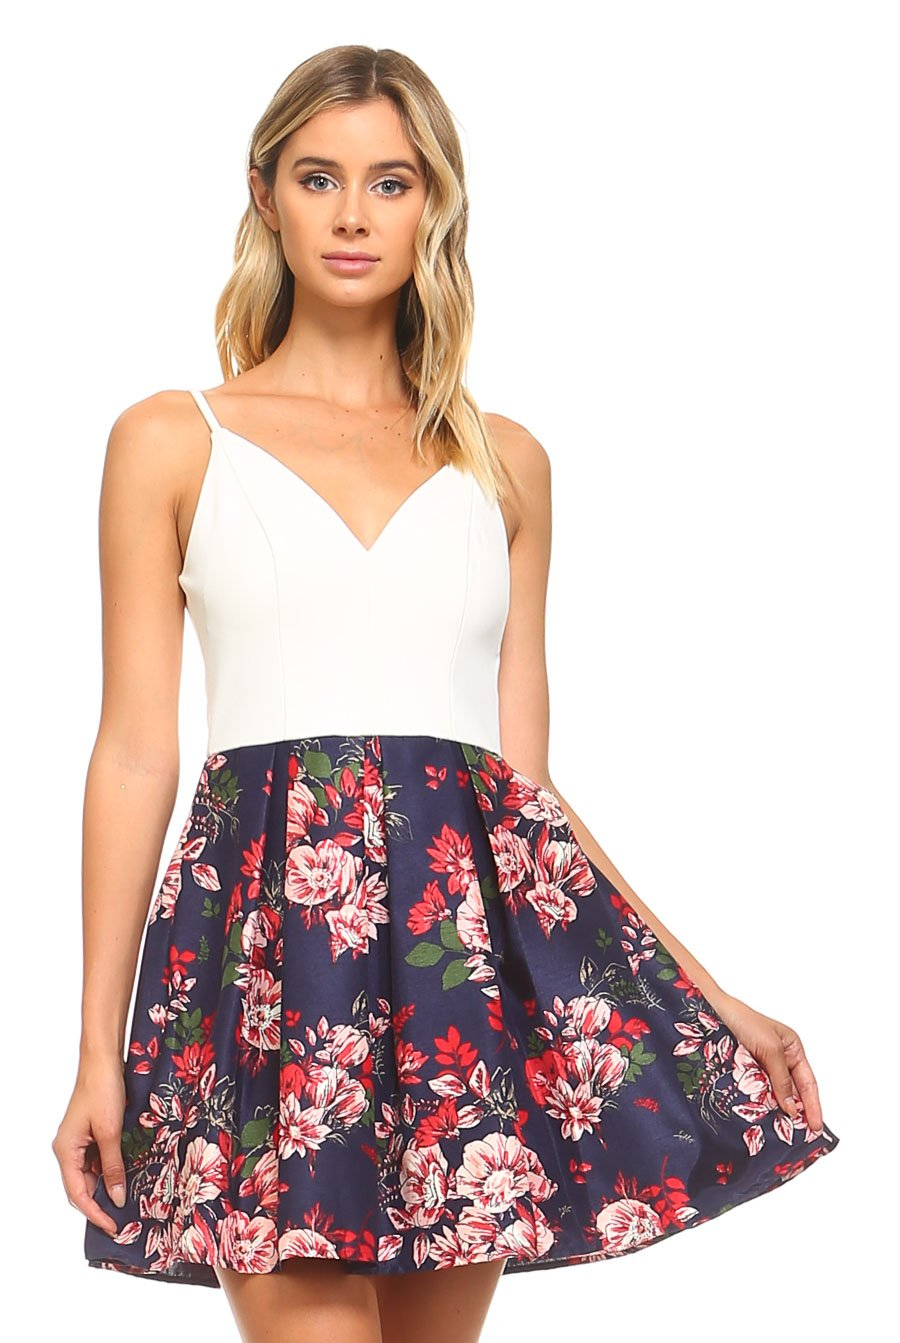 Teeze Me | Sweetheart Pleated Floral Skirt Dress  | Off-White/Navy